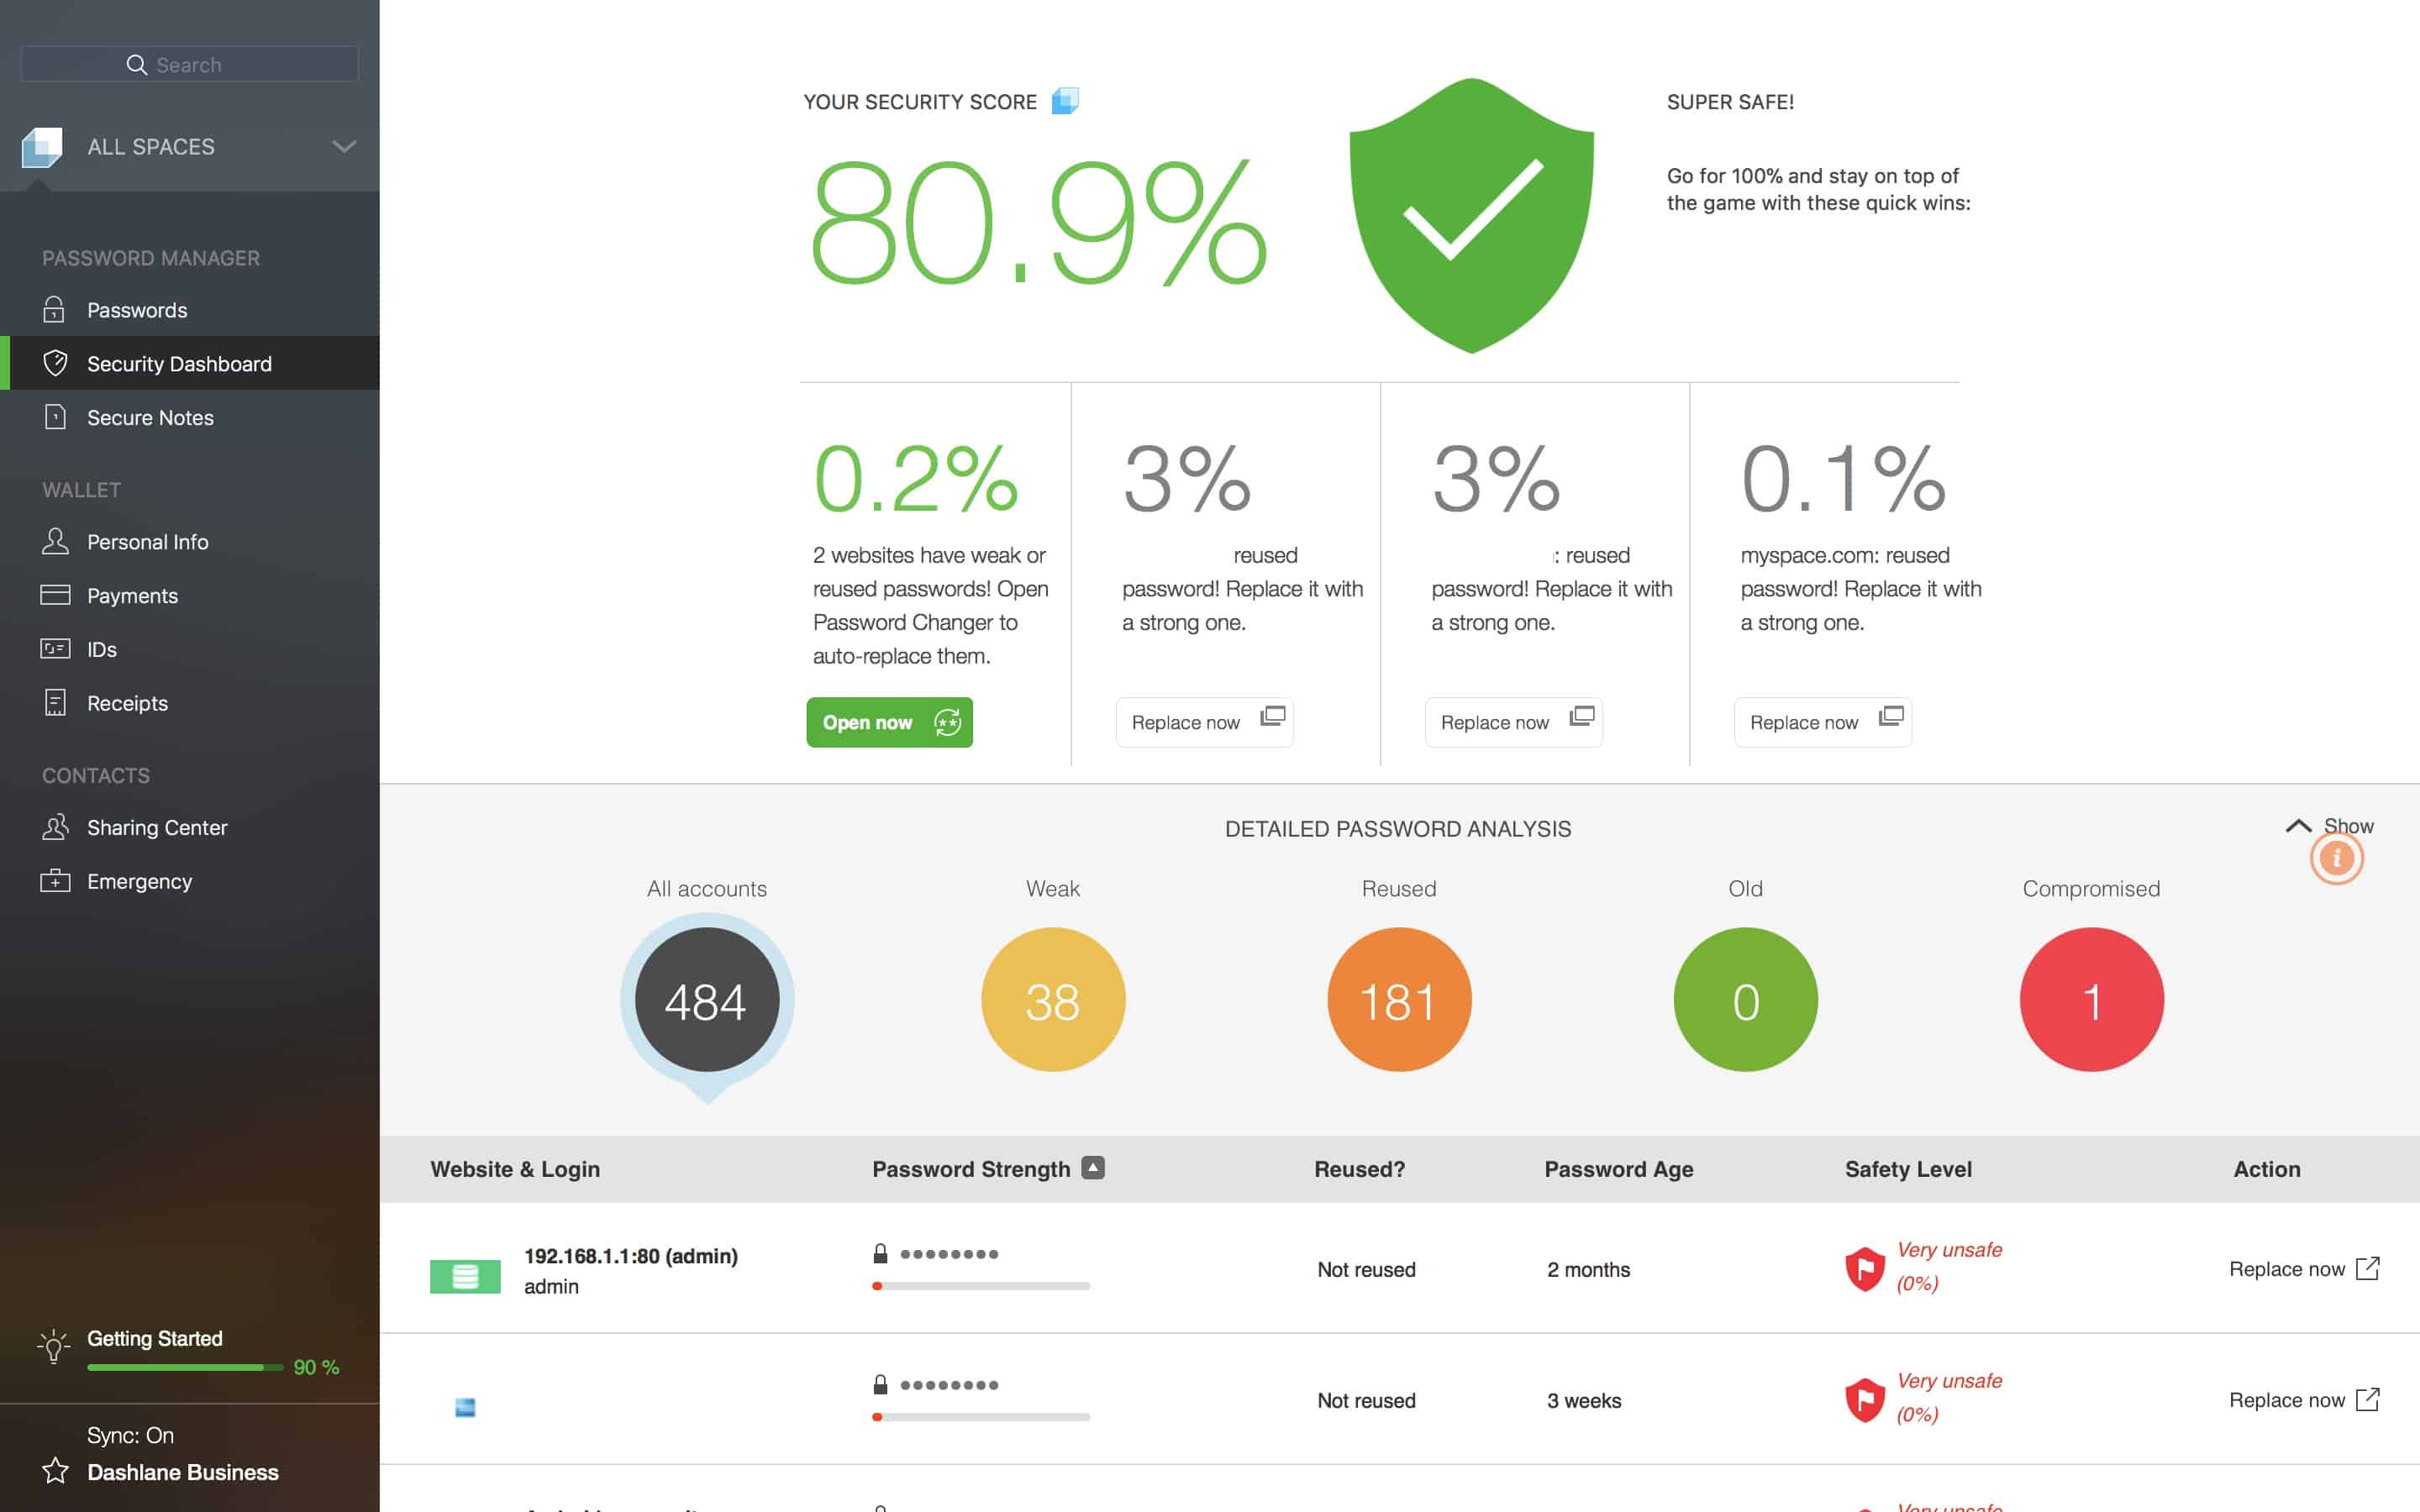 Dashlane Security Dashboard